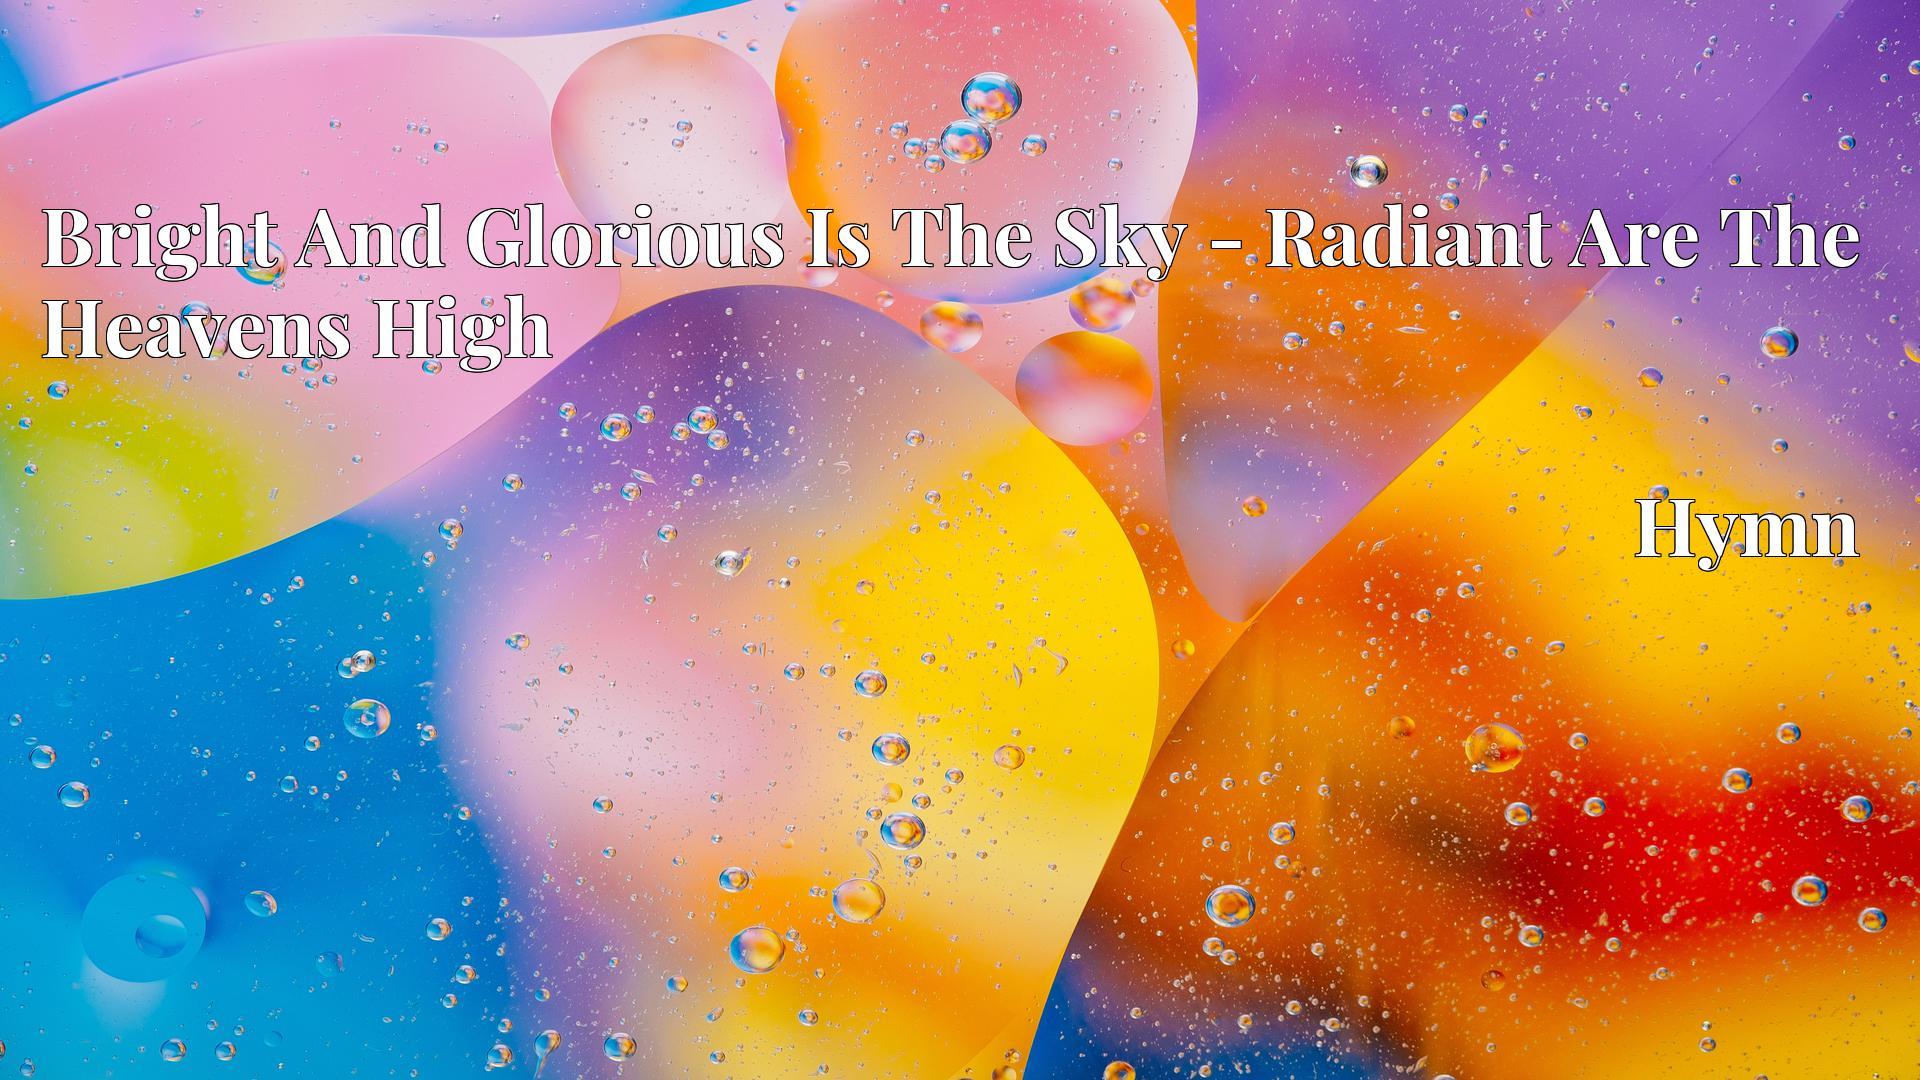 Bright And Glorious Is The Sky - Radiant Are The Heavens High Hymn